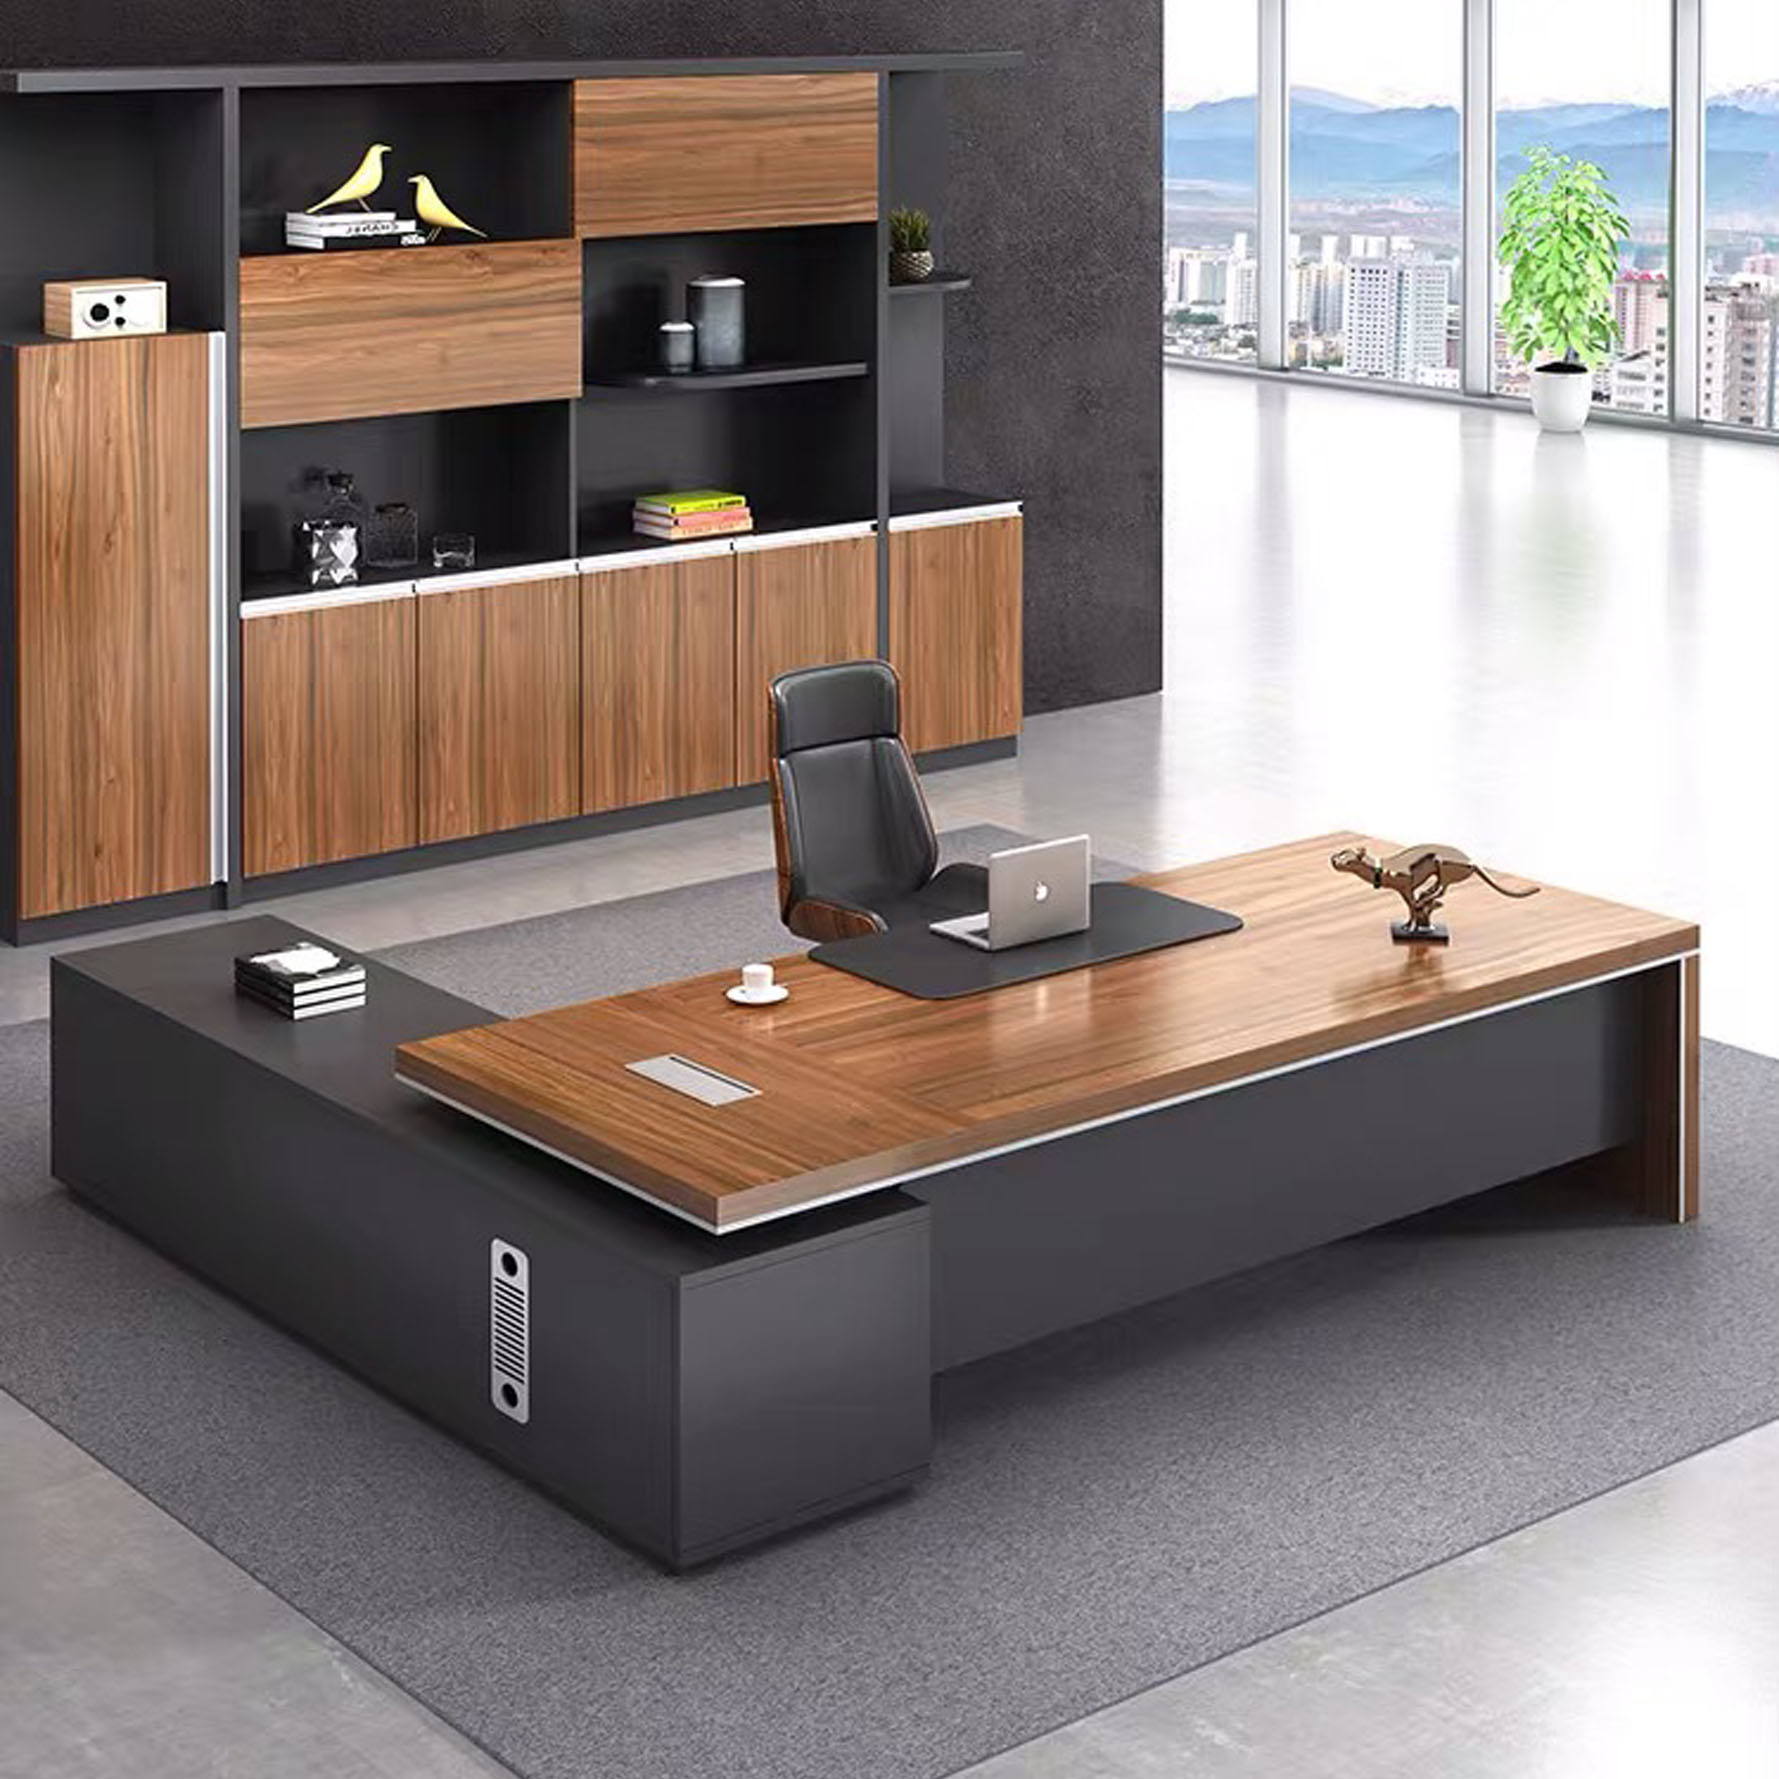 - China Luxury Office Computer Desks Office Furniture Office Desks